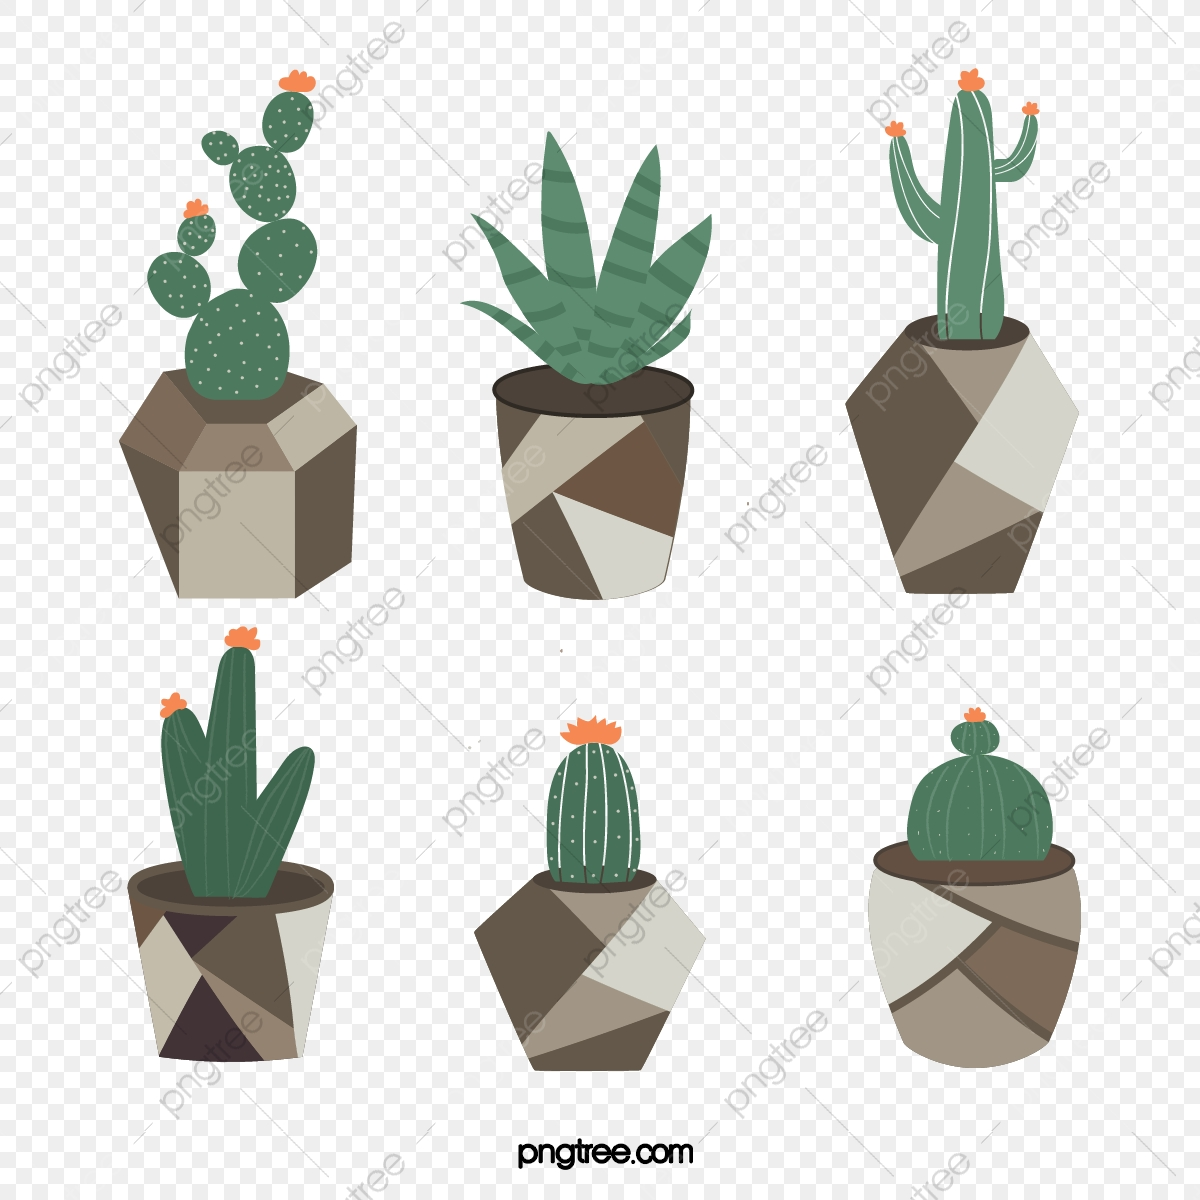 Ins Style Morandi Cactus Succulent Sticker Journal Scrapbook Instagram Morandisse Cactus Succulents Png And Vector With Transparent Background For Free Download